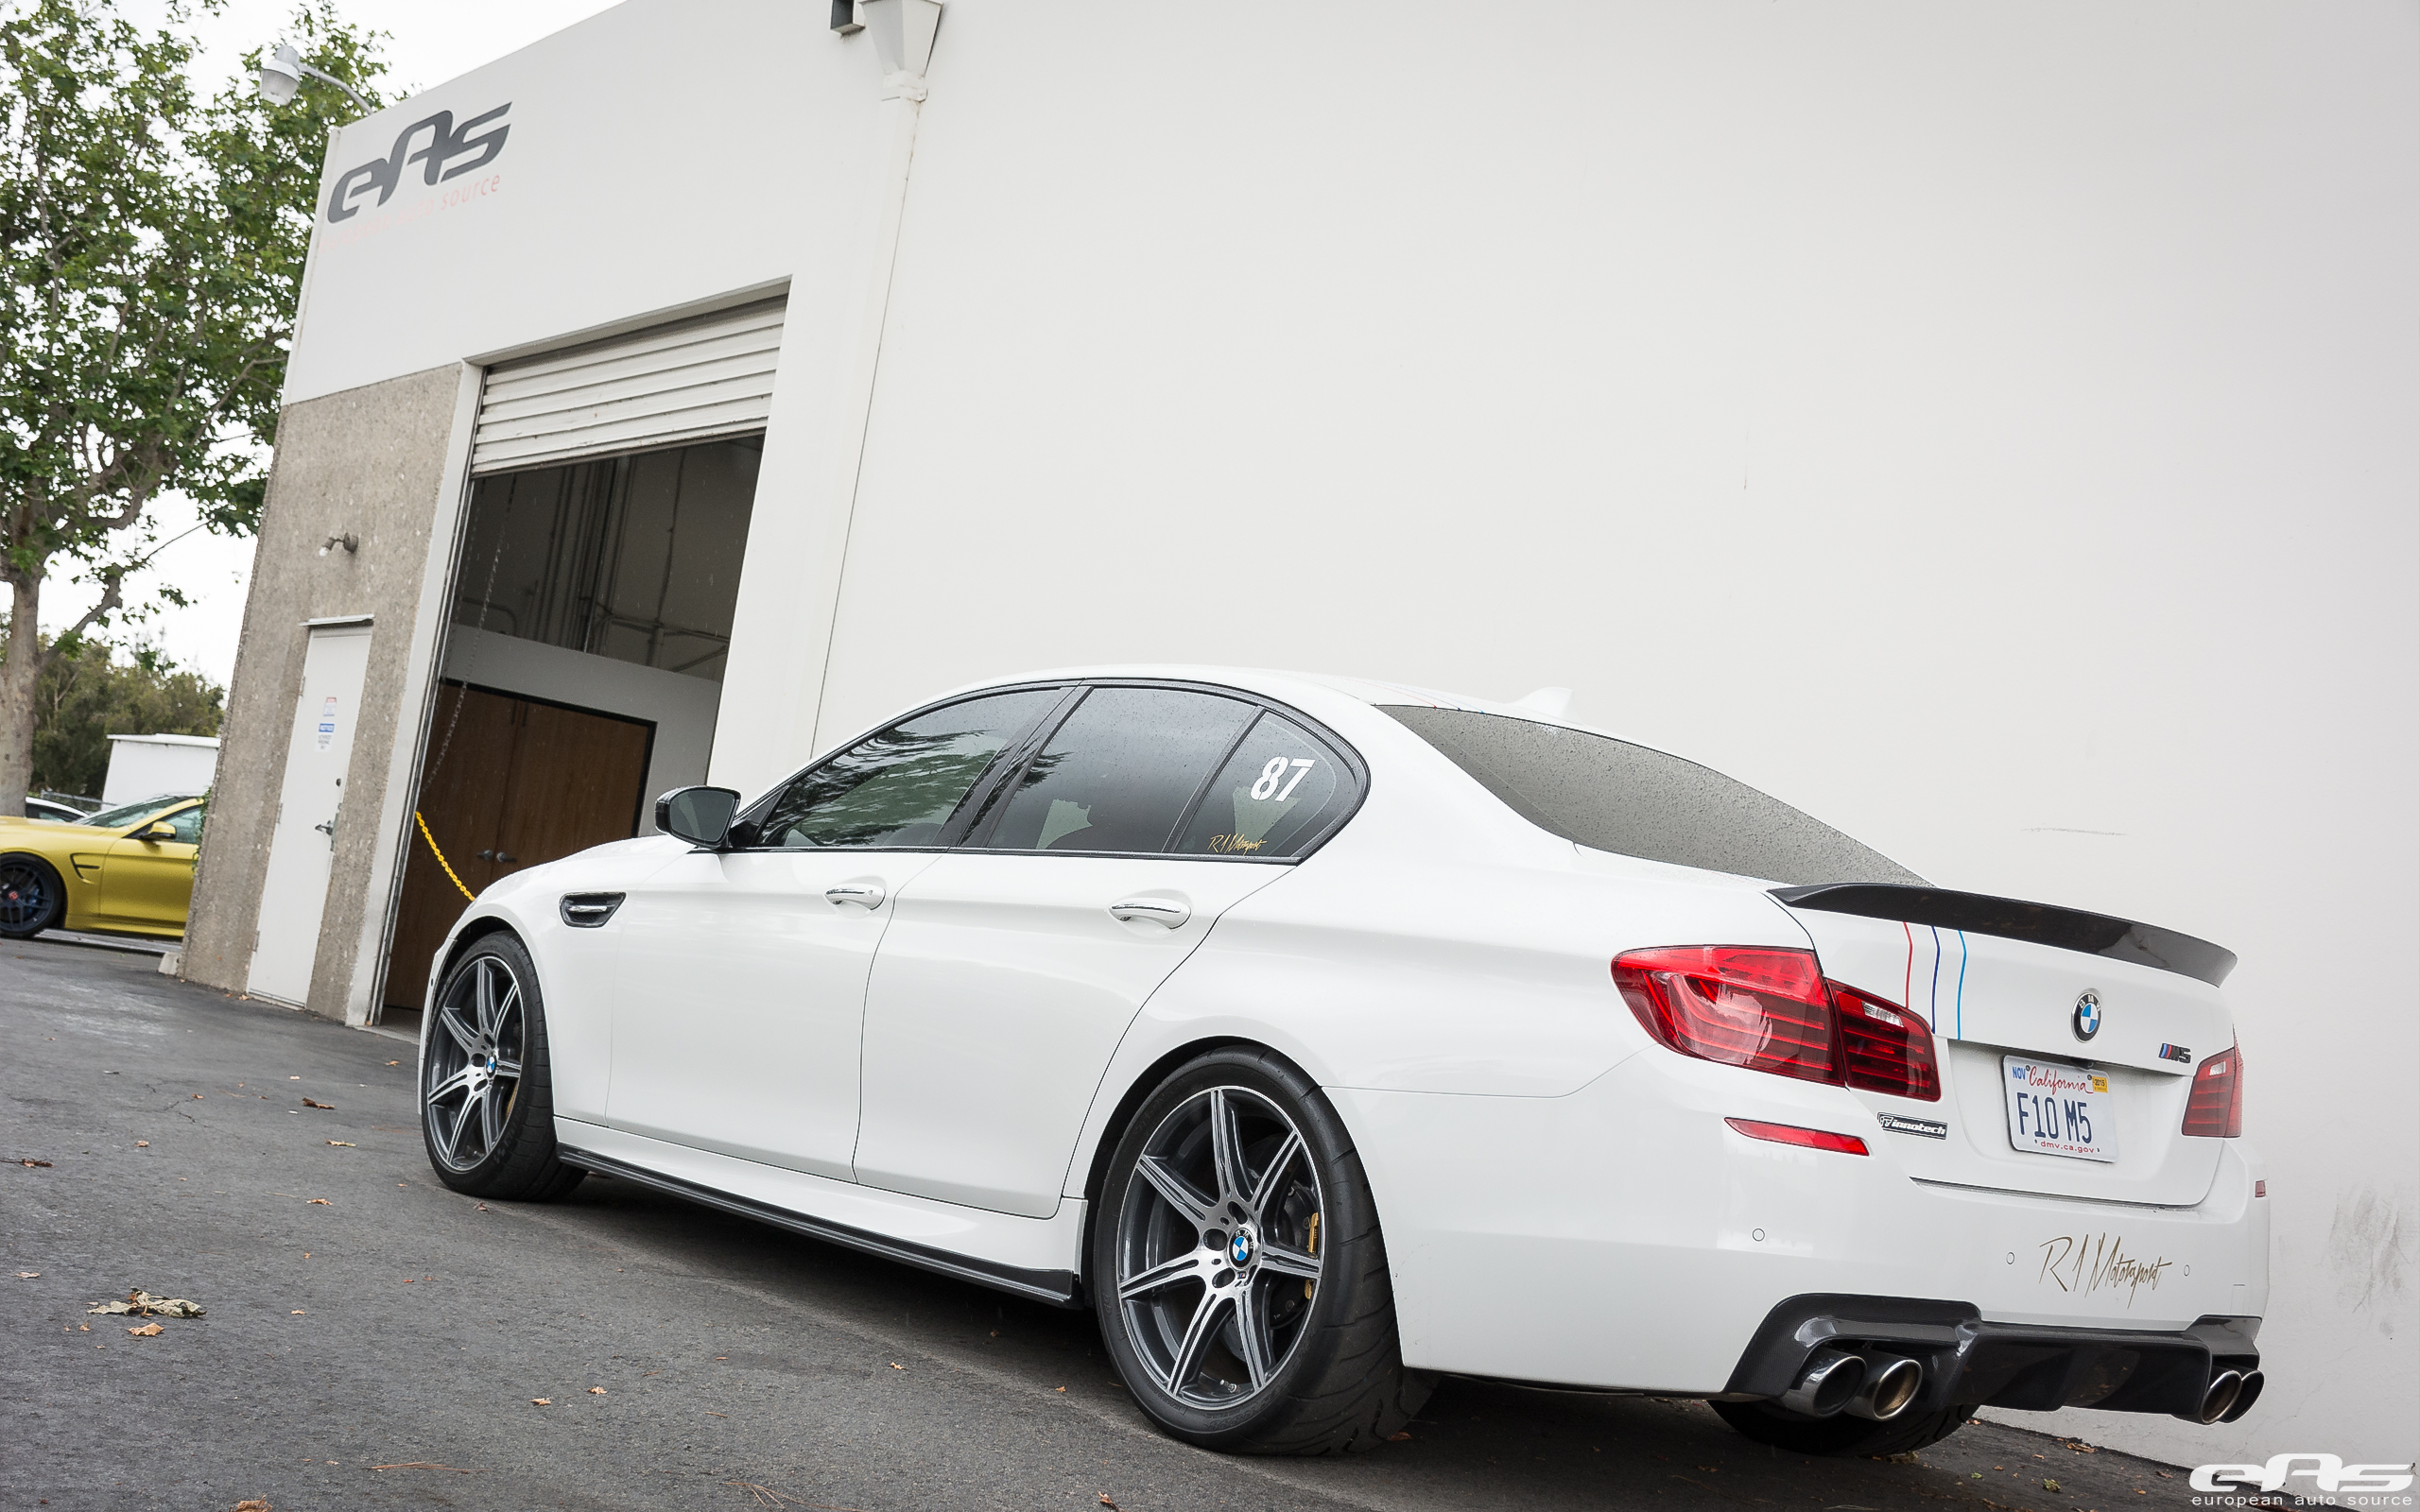 Bmw F10 M5 At Eas Getting Some Work Done